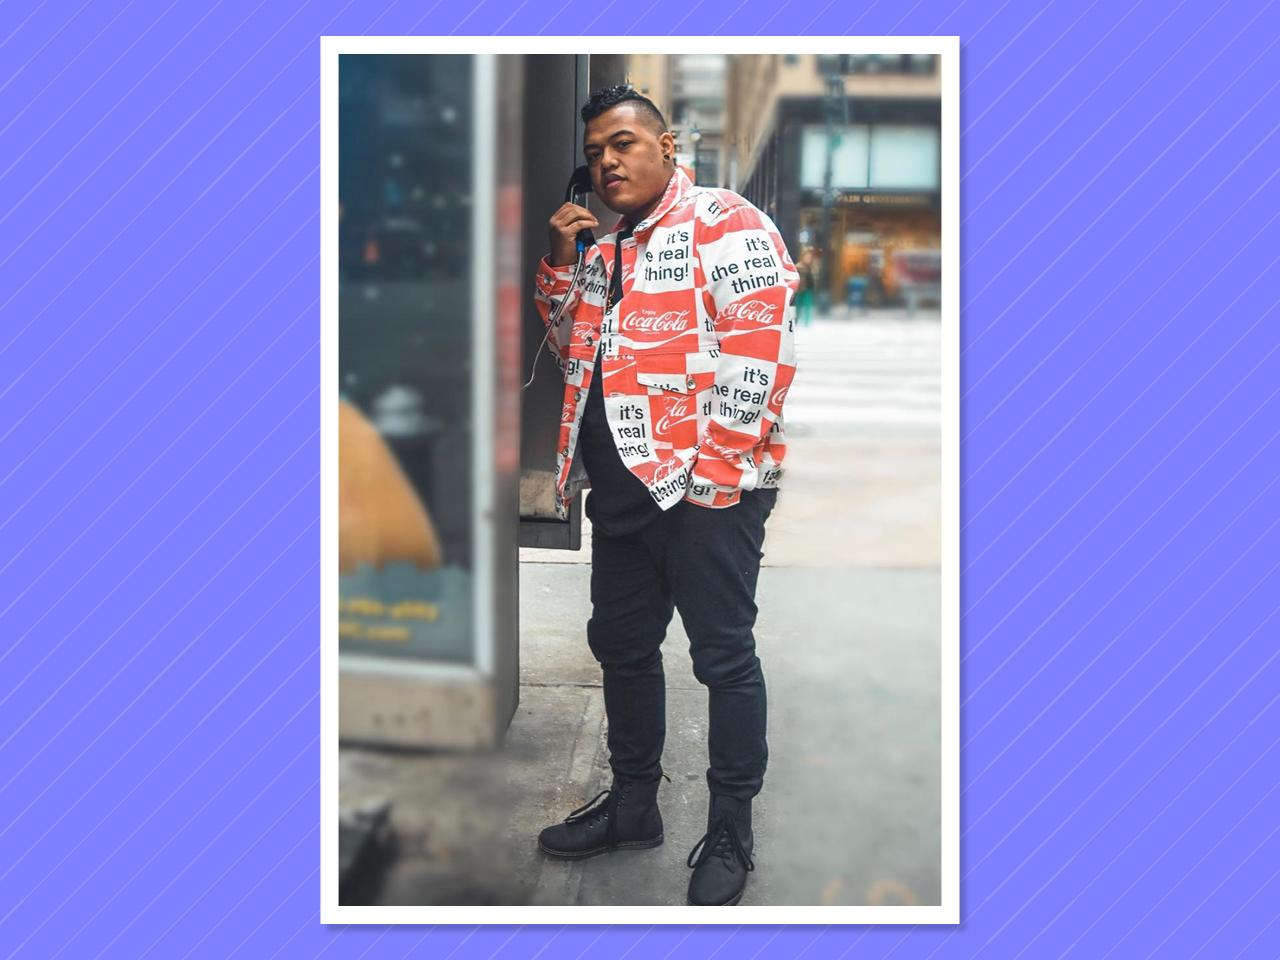 "<p></p><p>This <a rel=""nofollow"" href=""https://www.instagram.com/dghramm/"">New Jersey native</a>'s unique sense of style and cohesive looks help prove that big-and-tall men can be street-style stars too. (Photo: Tony Trott) </p><p></p>"